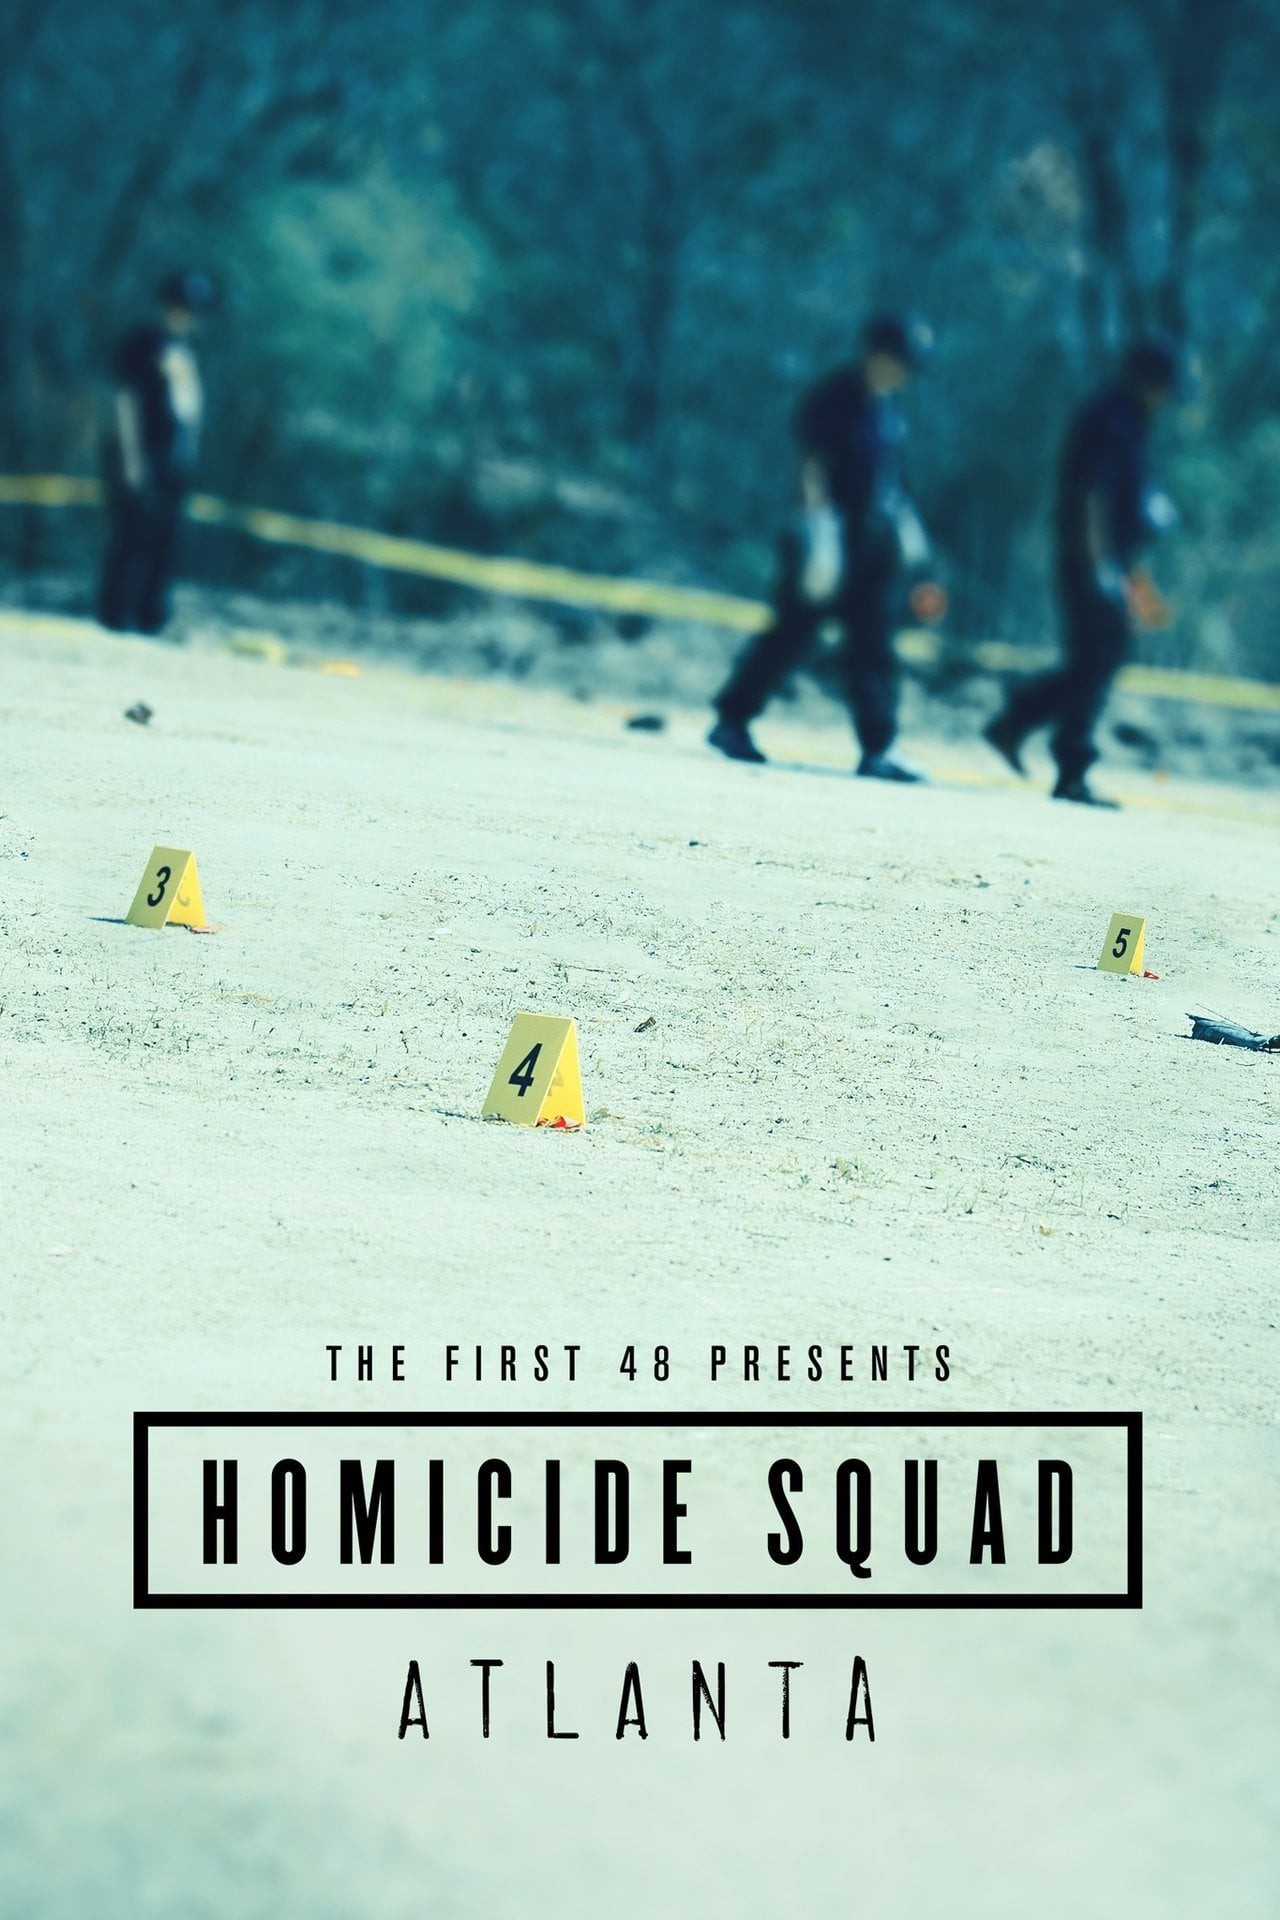 The First 48 Presents: Homicide Squad Atlanta (2019)